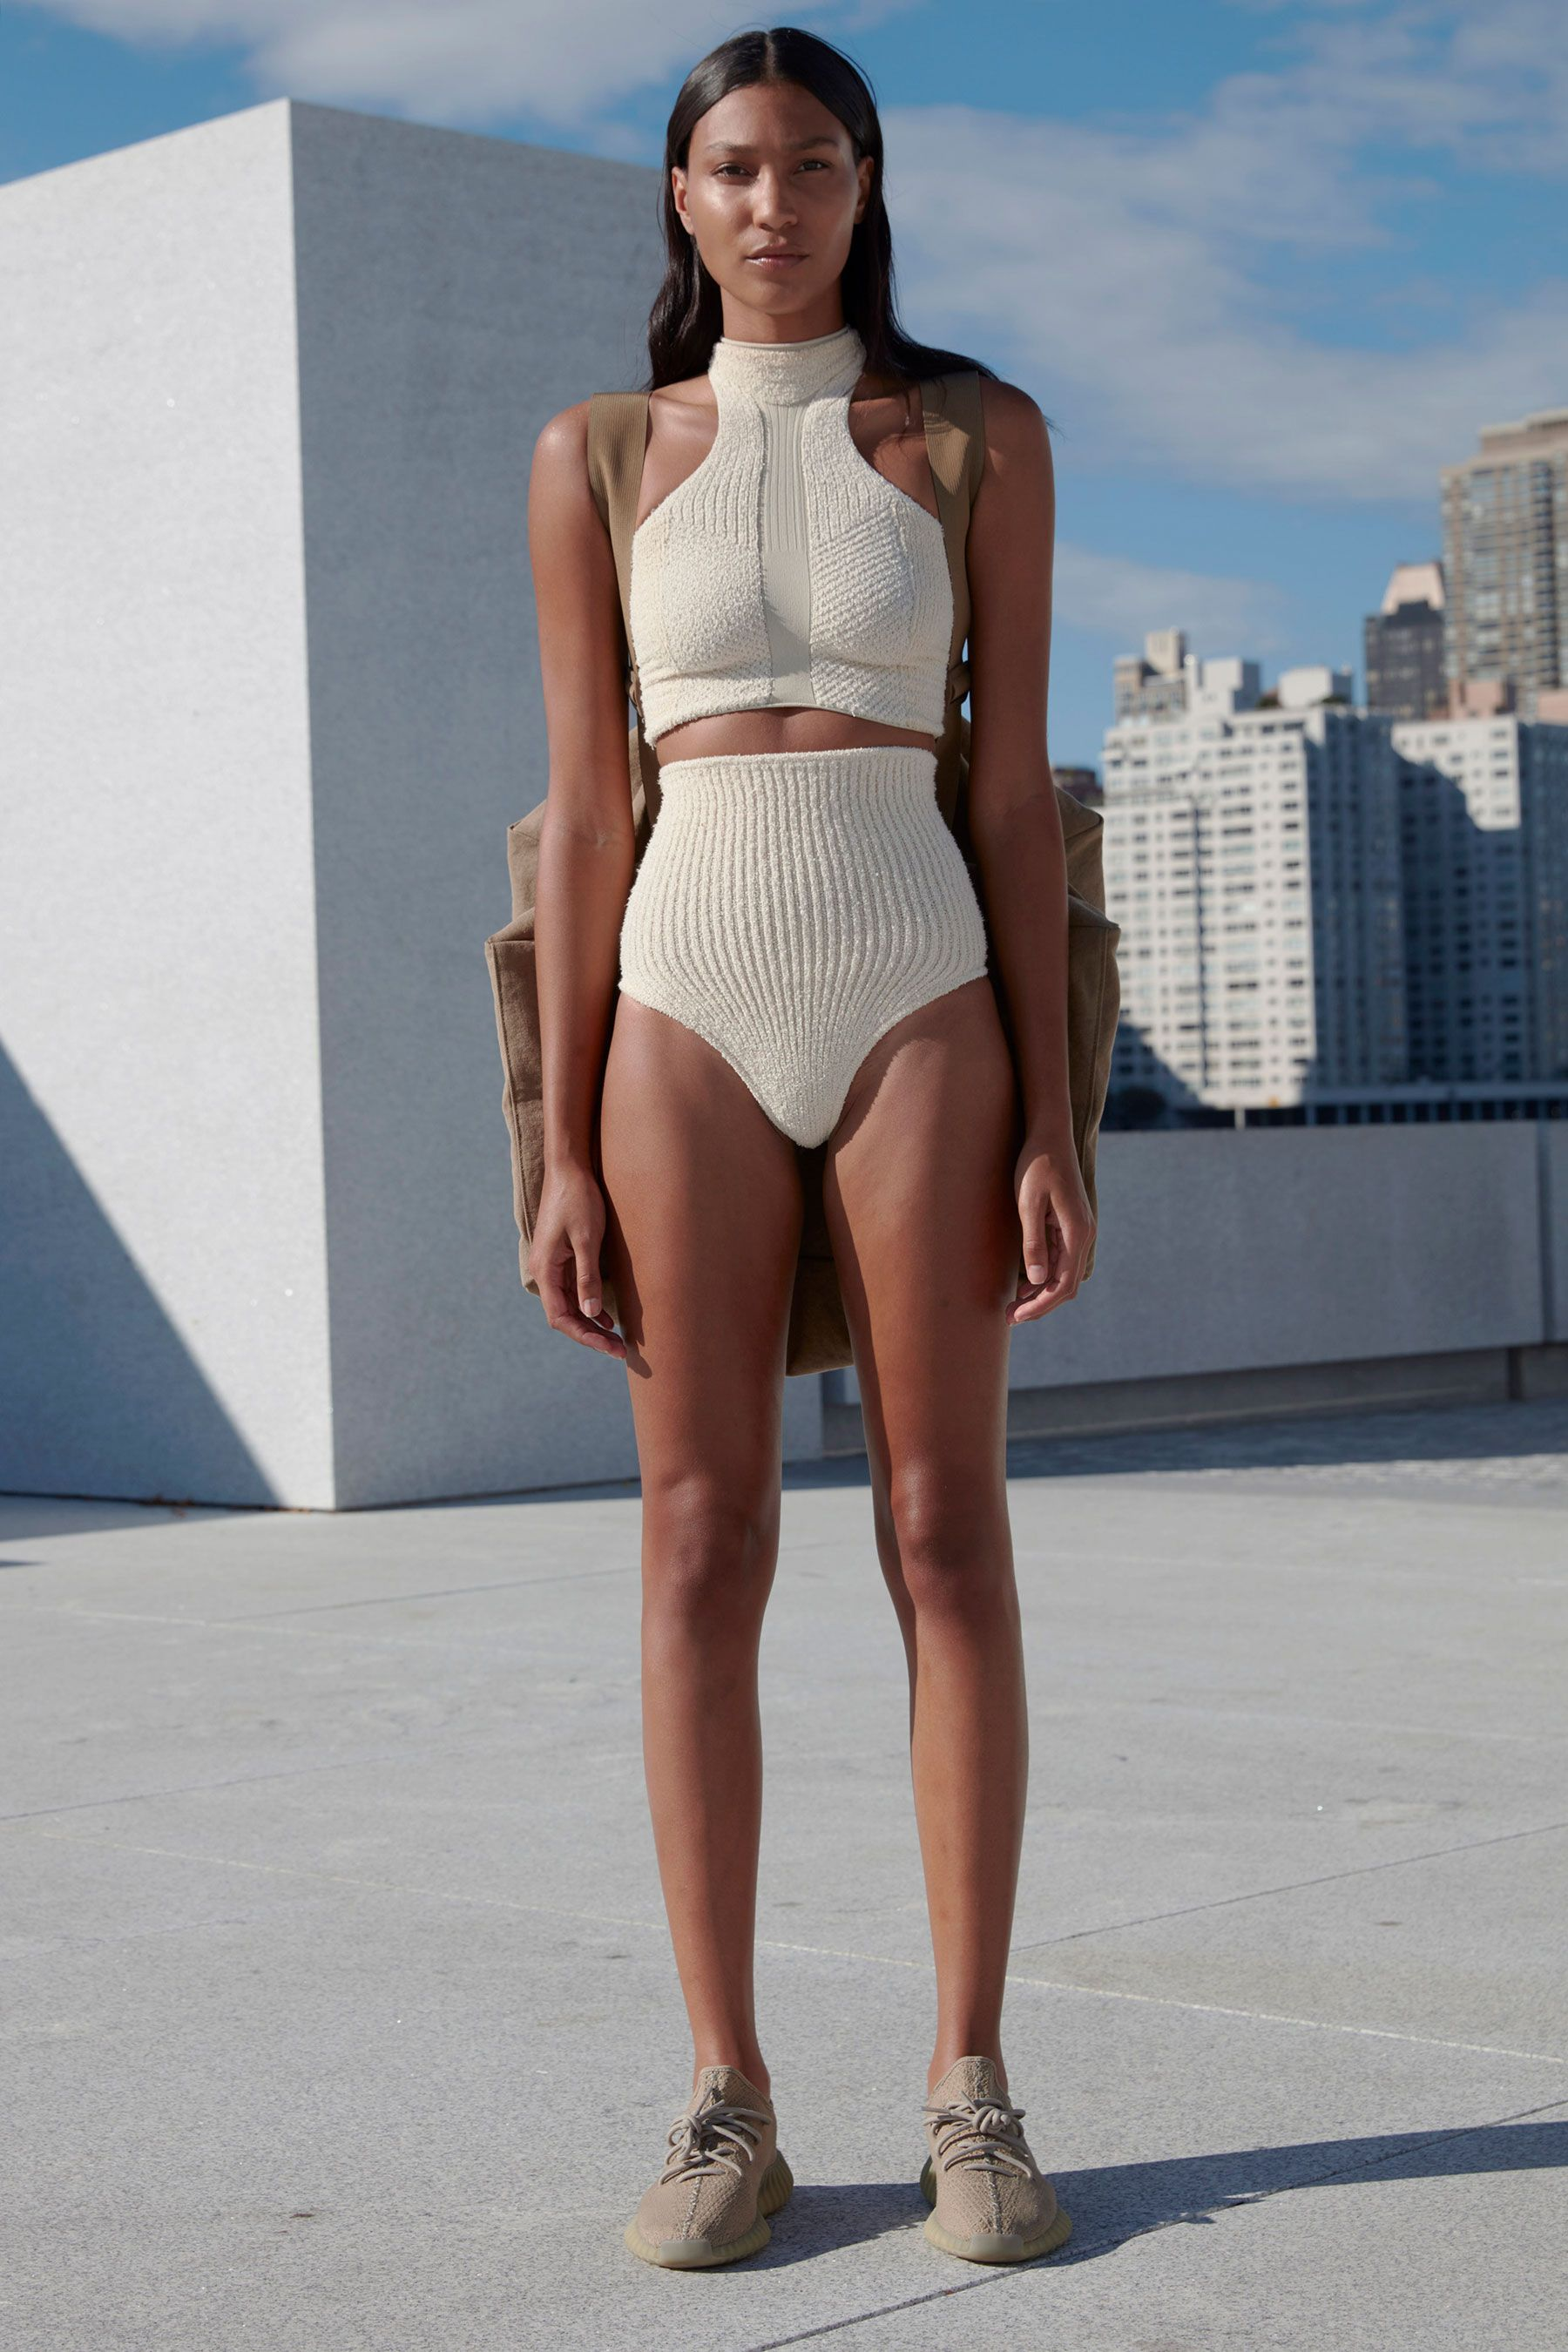 Kanye West Yeezy Season 4 Collection — See the Yeezy 4 Fashion Show  Lookbook Photos a9c7586f23